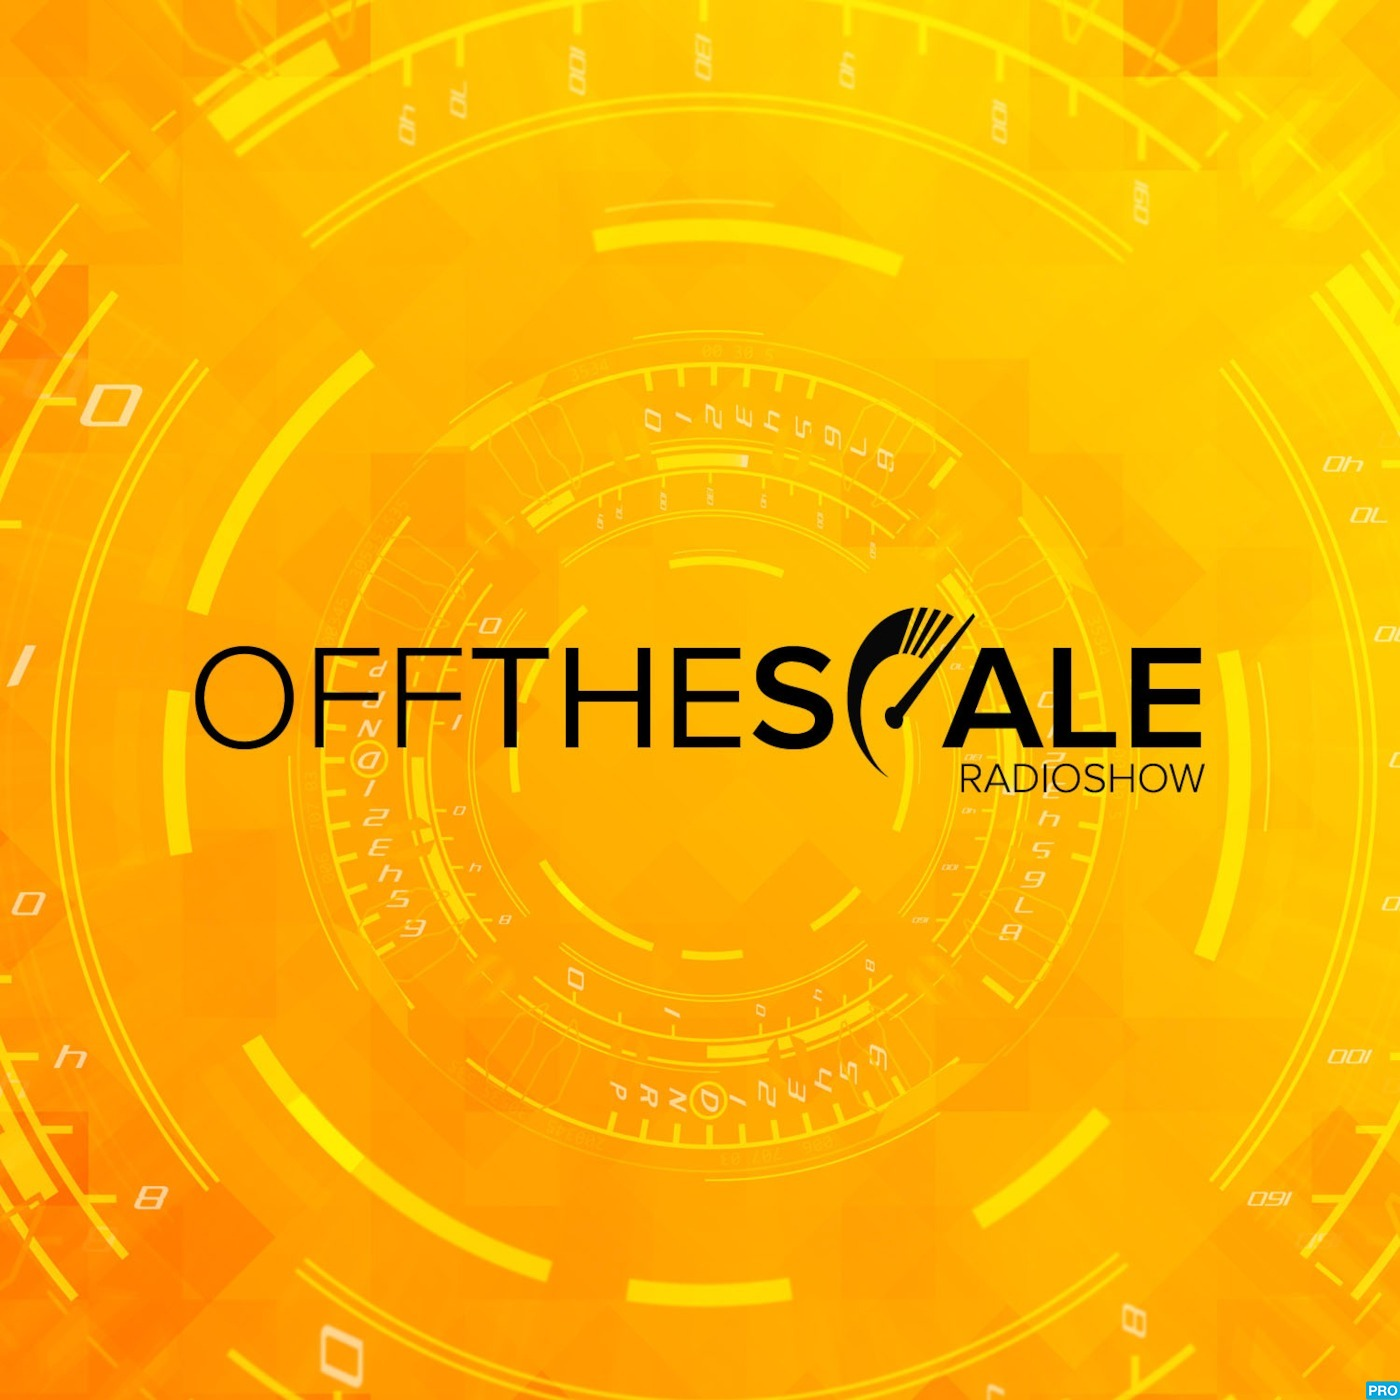 Offthescale Radioshow